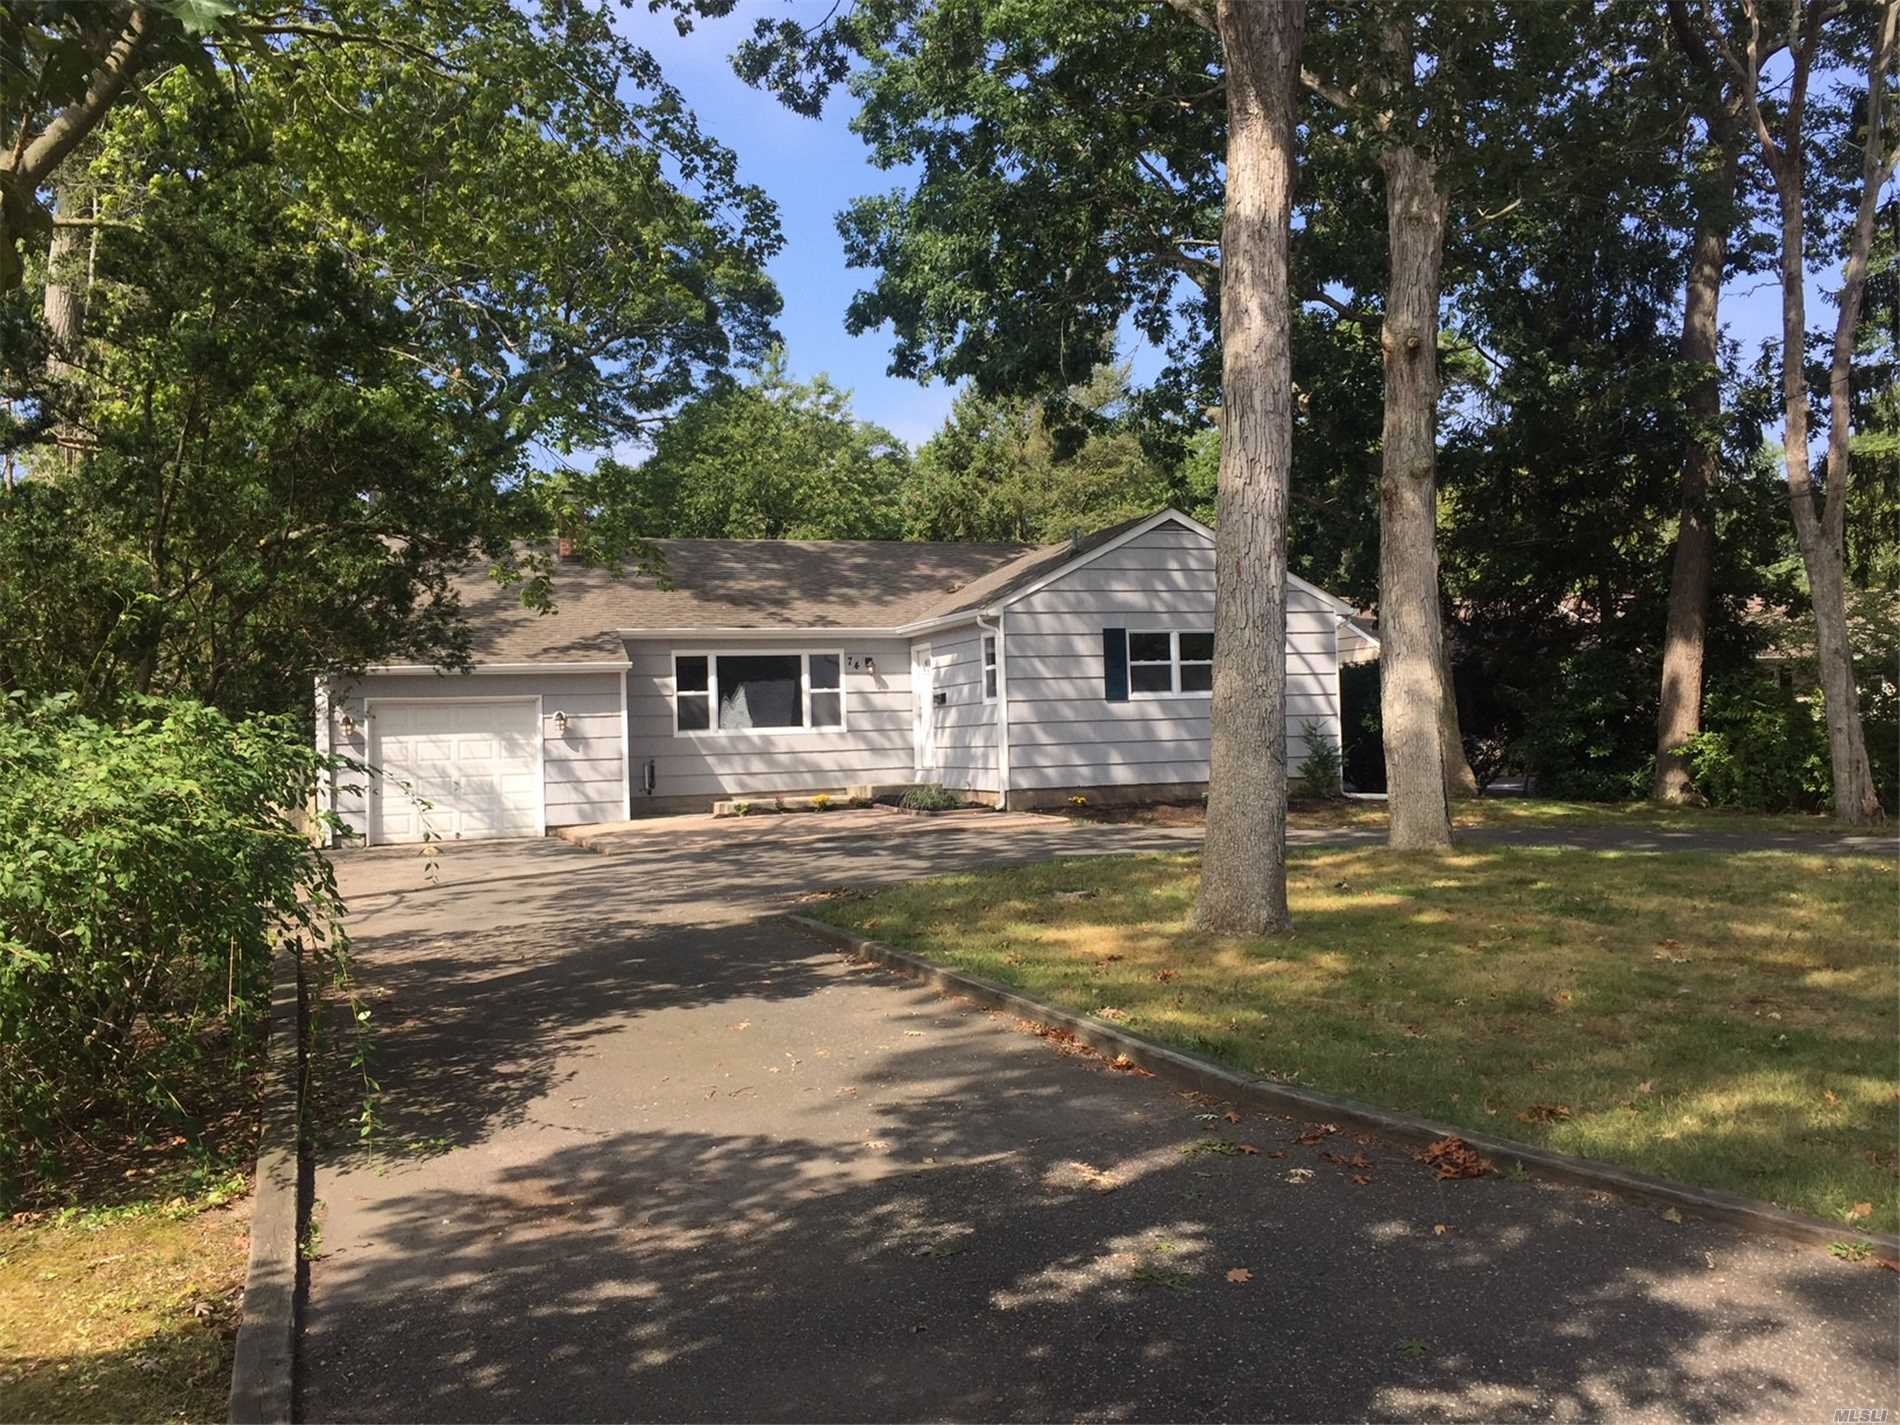 Totally Renovated Ranch In Prime South Of Montauk Location, All New Windows, New Bath(S), New Kitchen, New Oil Heating System, New Oil Tank..Freshly Painted And Ready To Go. Great East Islip School District. Circular Driveway With Oversized Garage.